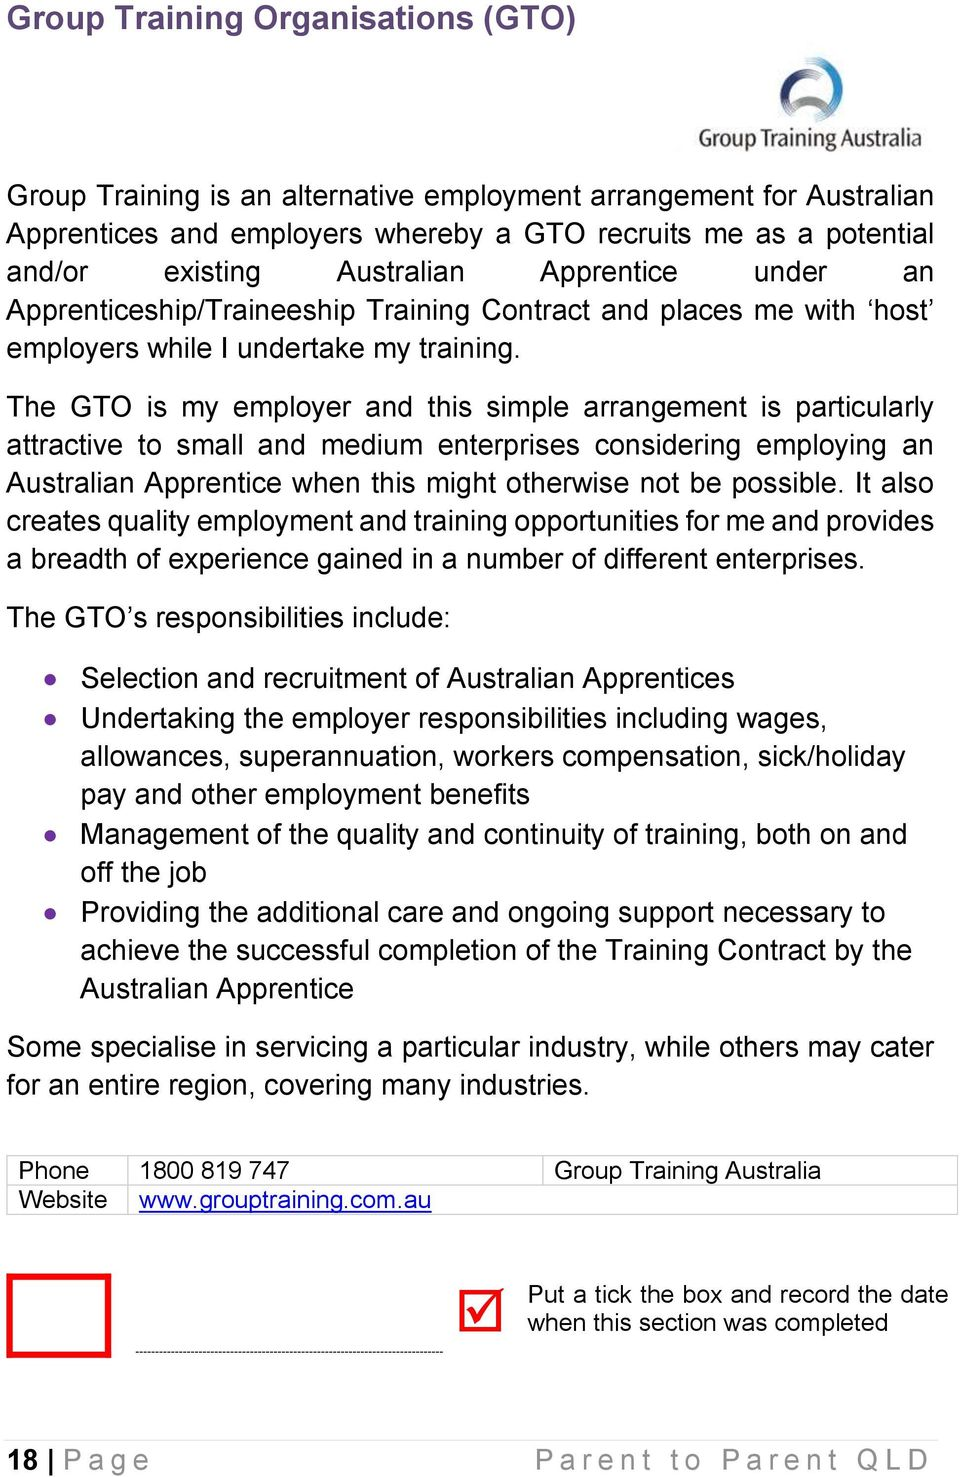 The GTO is my employer and this simple arrangement is particularly attractive to small and medium enterprises considering employing an Australian Apprentice when this might otherwise not be possible.